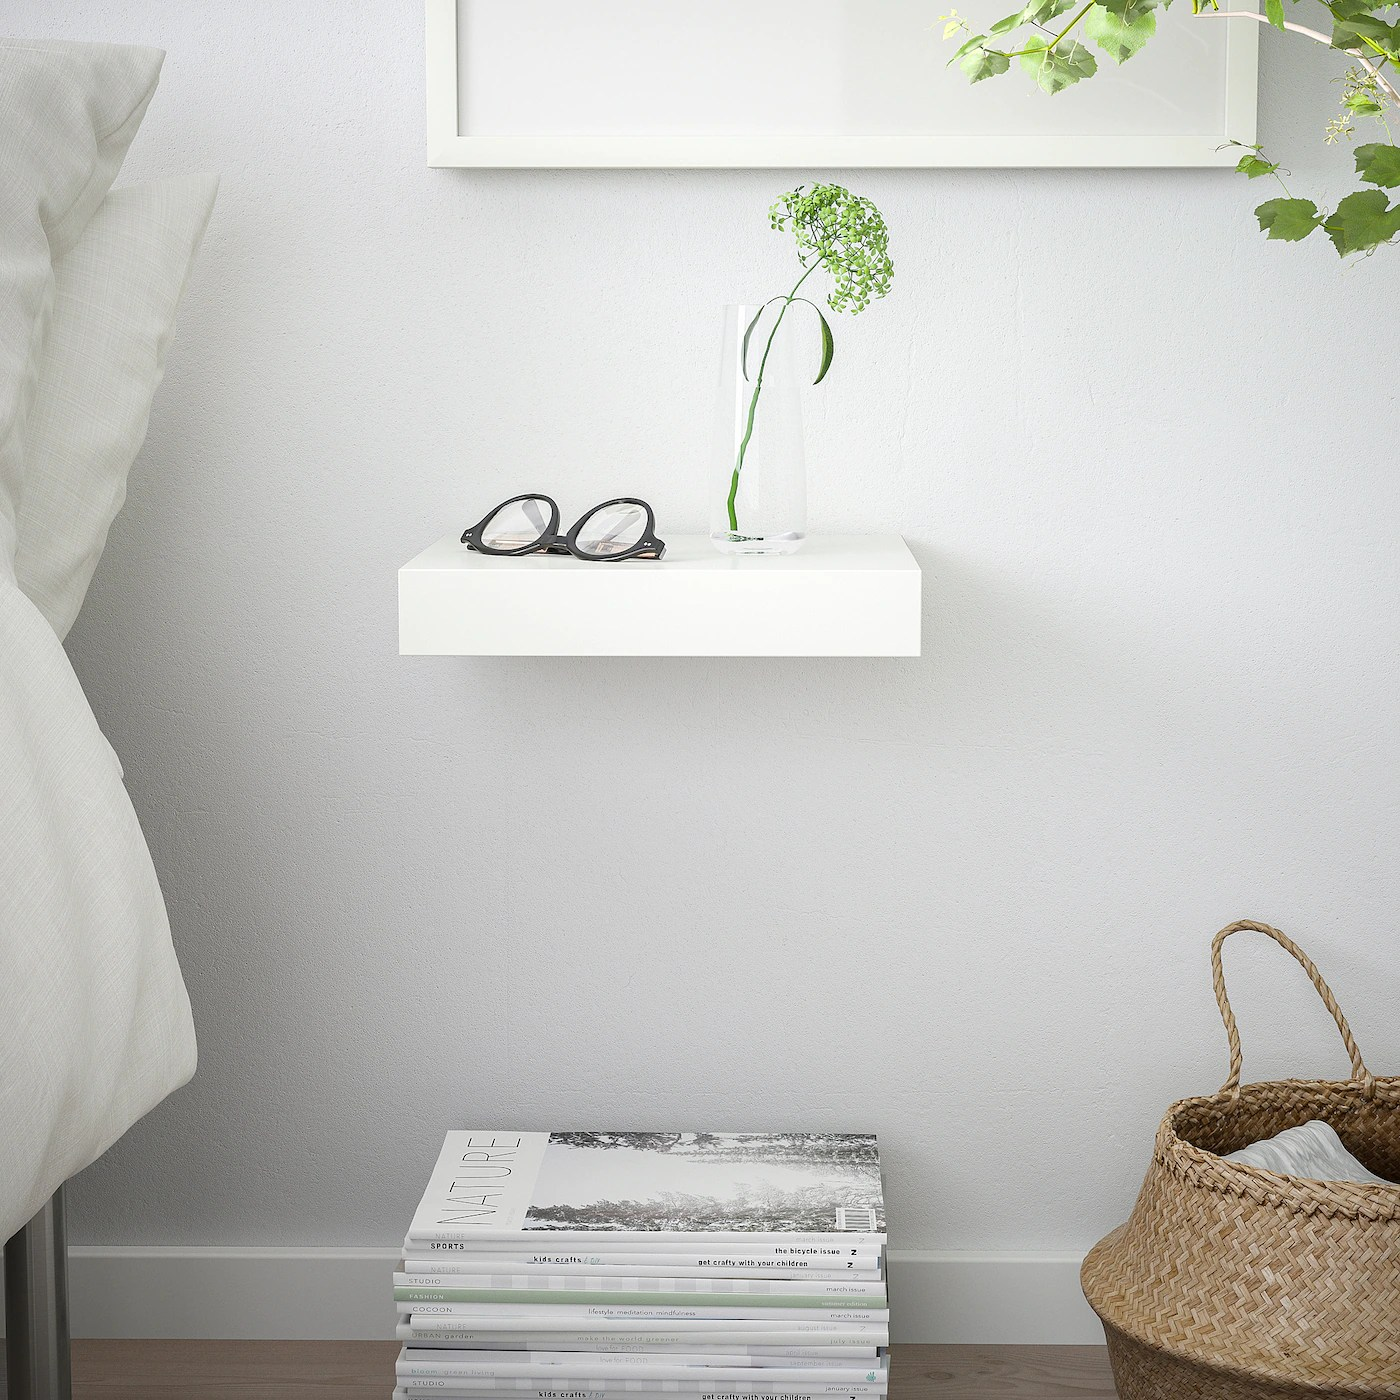 Lack White Wall Shelf 30x26 Cm Ikea